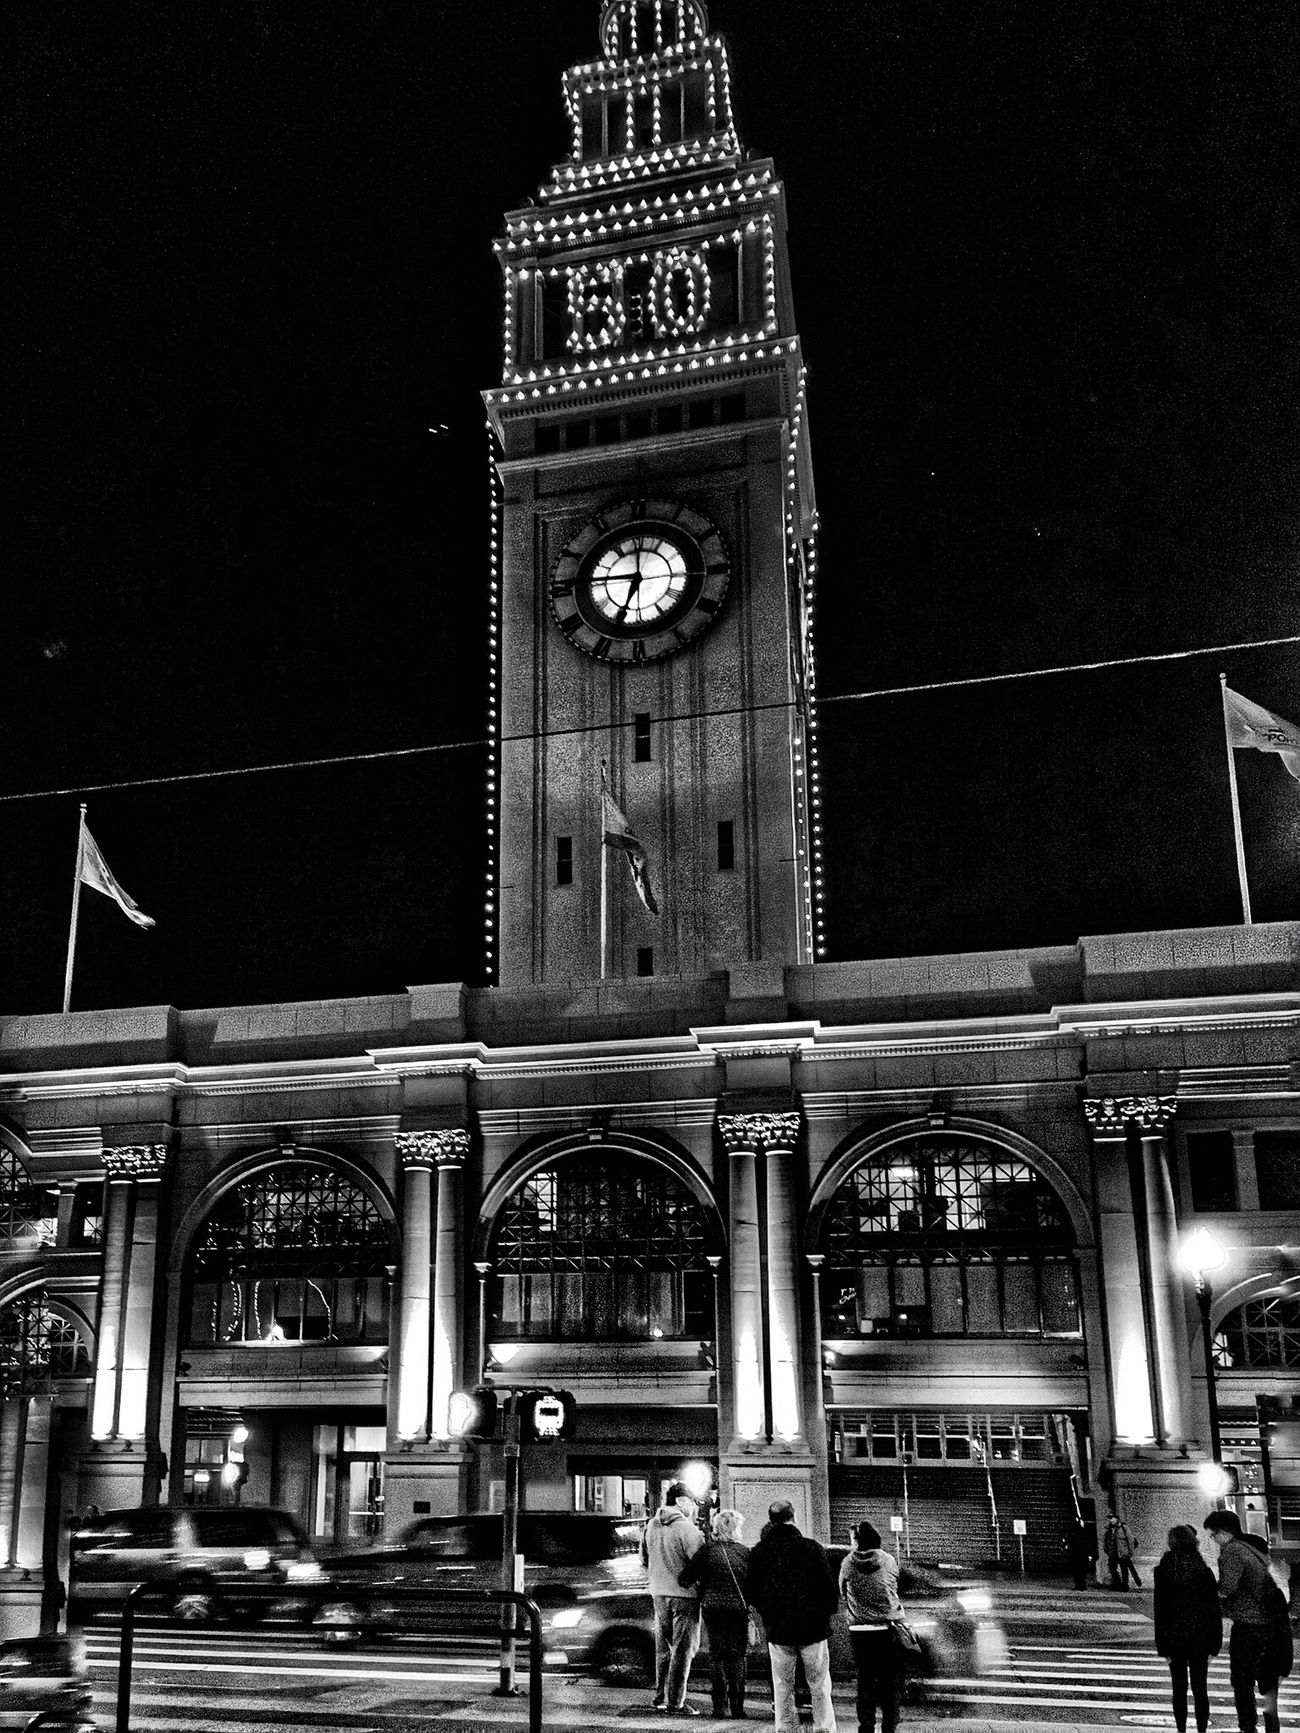 Clock Tower Architecture Building Exterior City City Life Outdoors Night Photography Night Lights Cityscapes Street Light Monochrome Blackandwhite Photography Black & White Black And White Blackandwhite Night Street Streetphotography StreetsWithPeople Architectural Detail Architecture